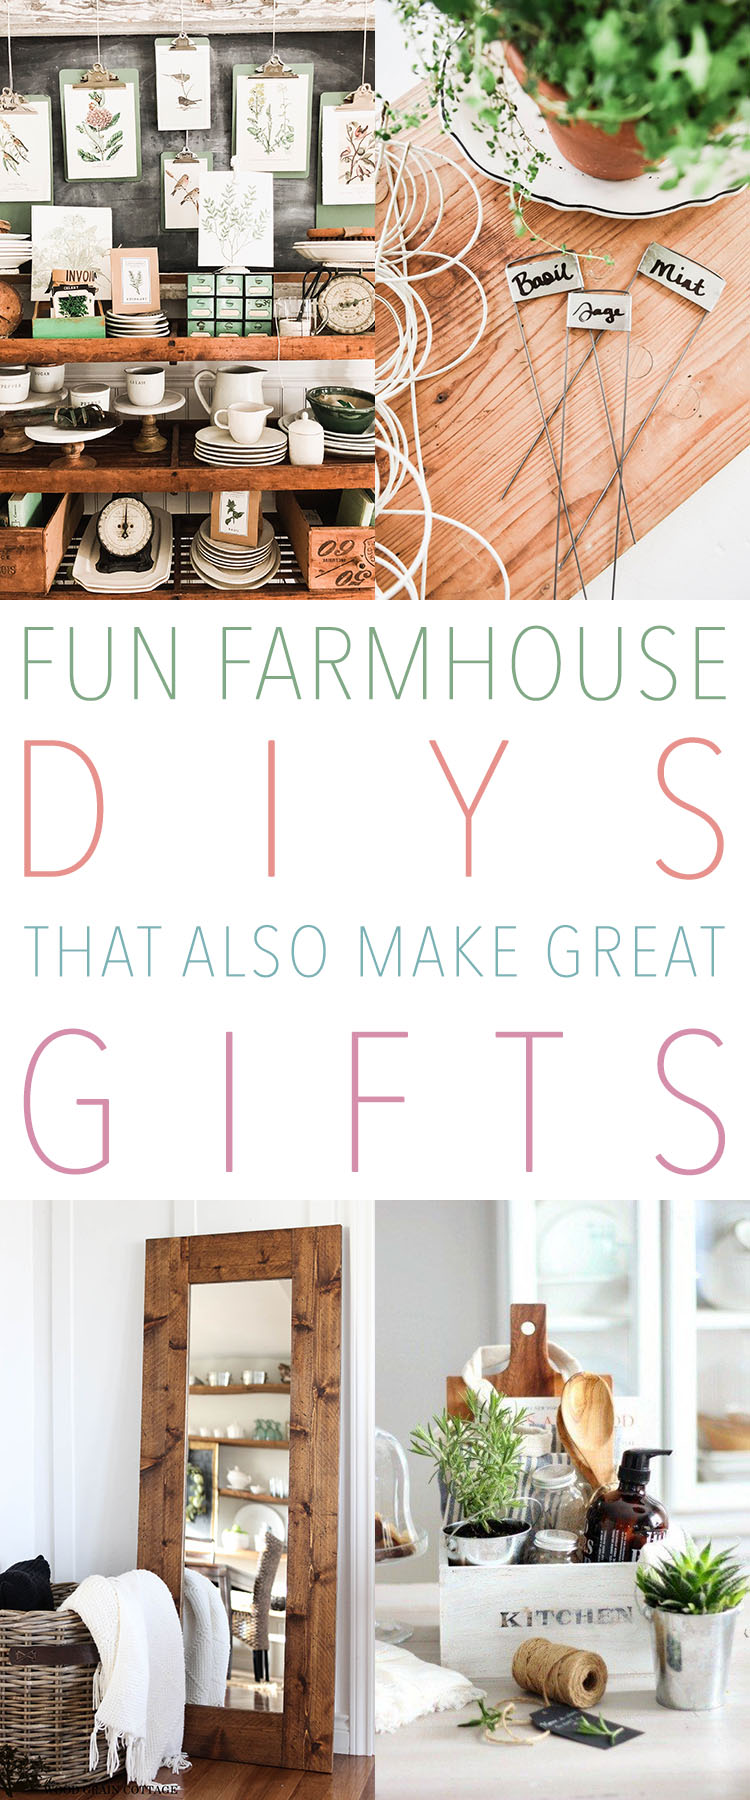 Fun Farmhouse DIYS That Also Make Great Gifts